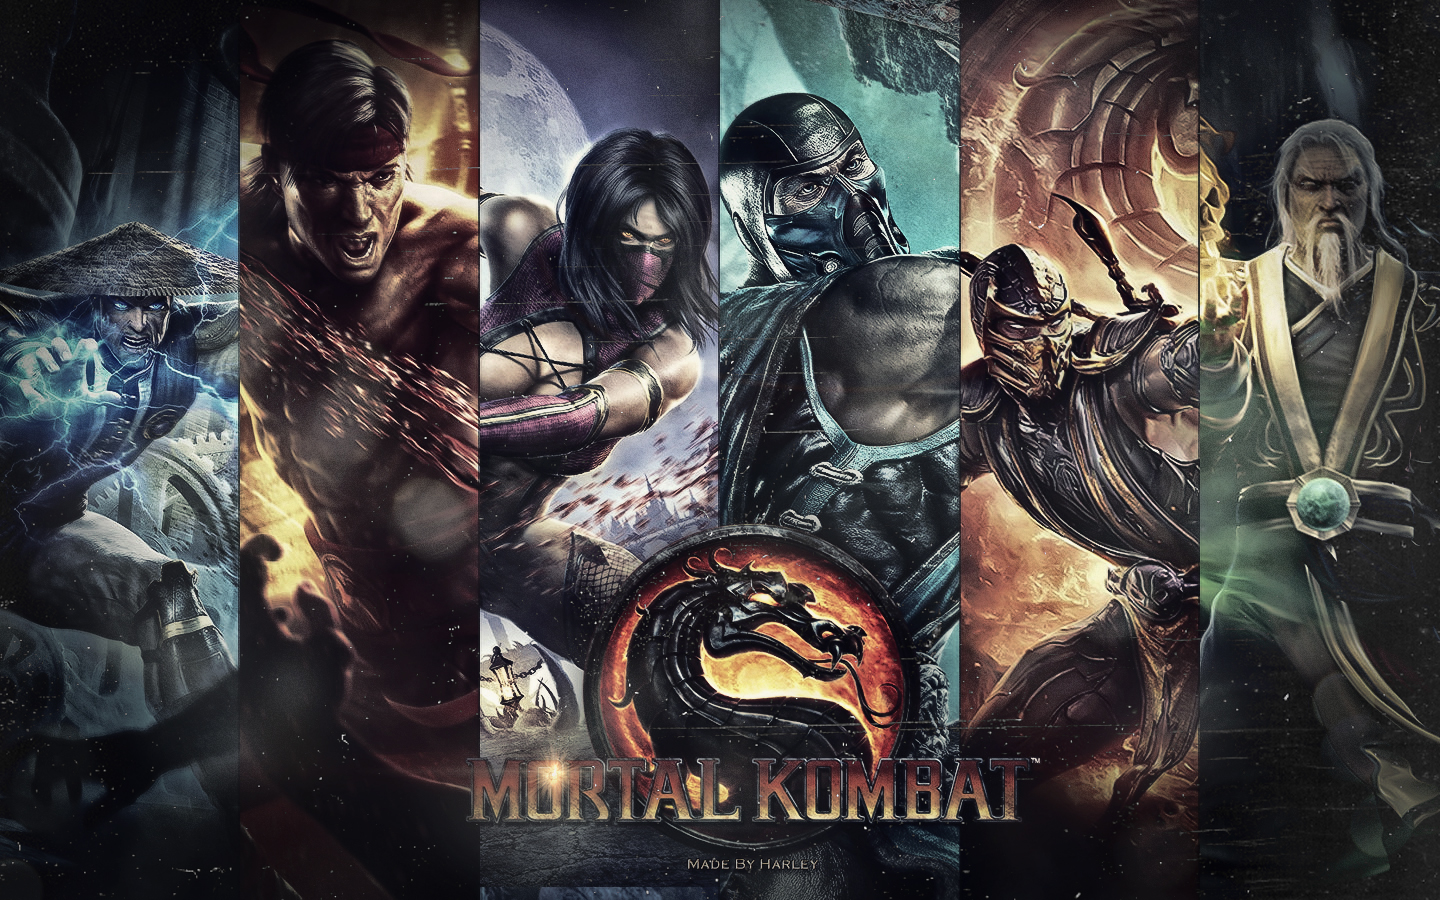 45 Mortal Kombat Xl Wallpaper On Wallpapersafari